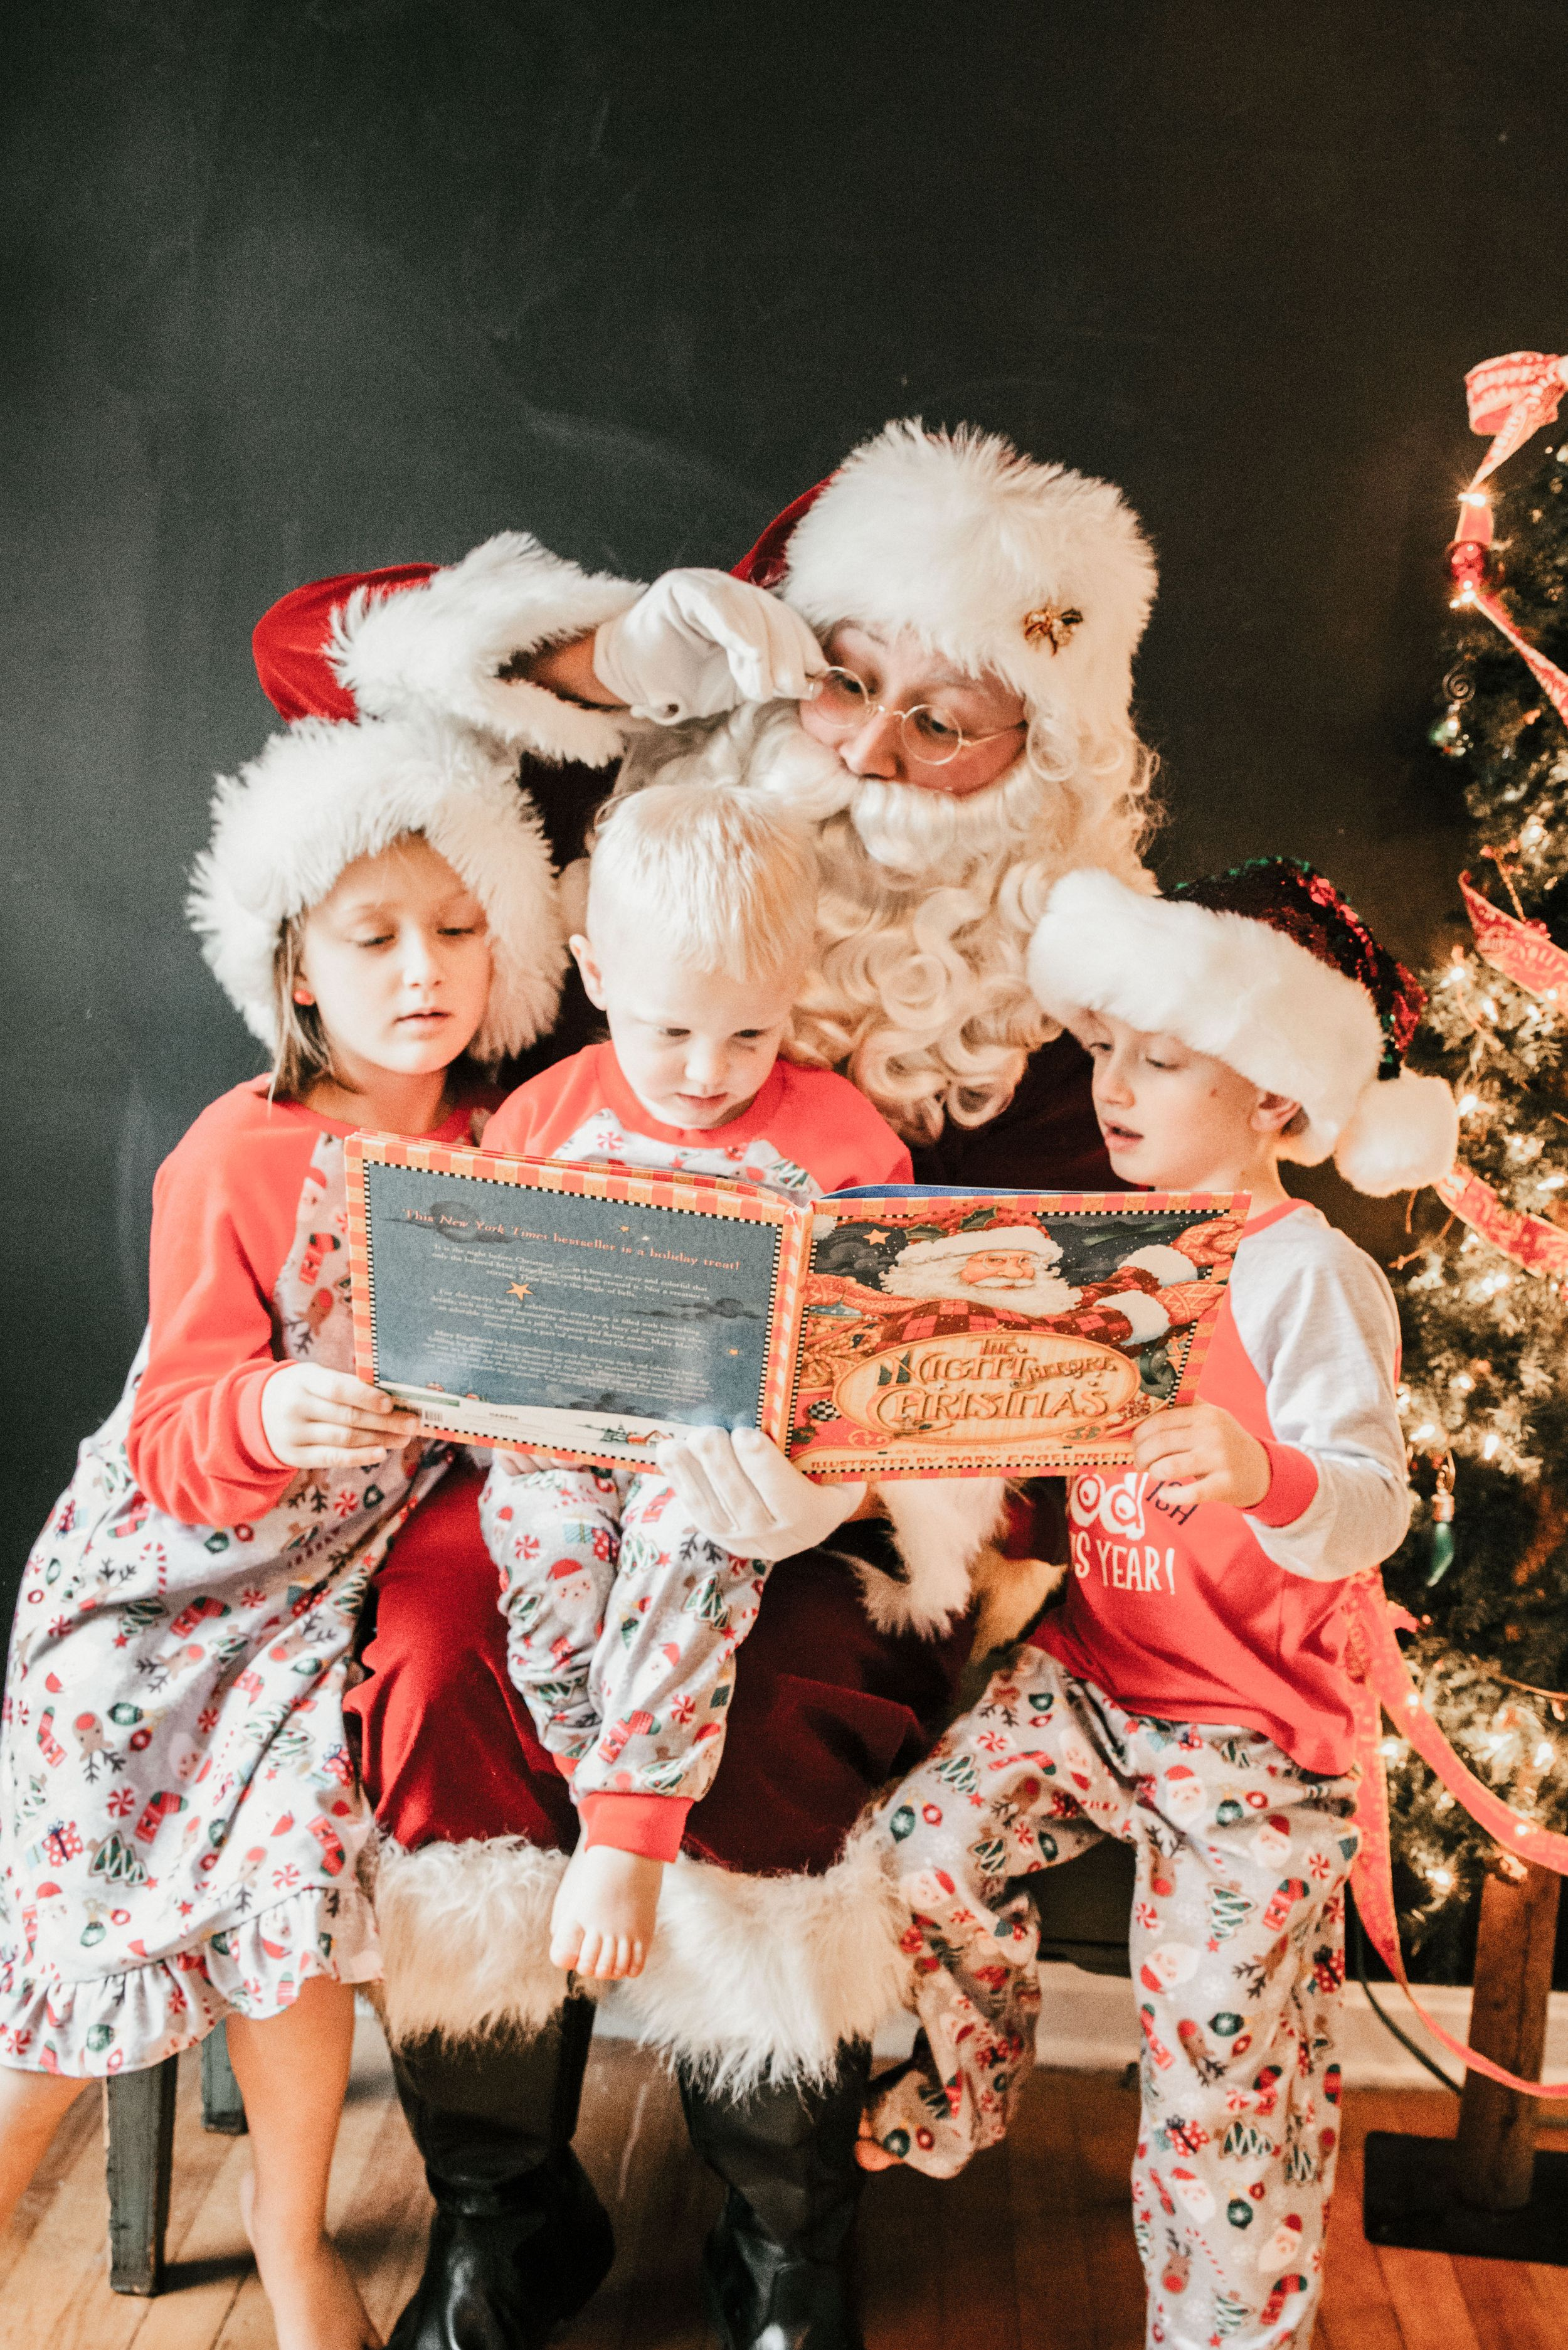 Santa reading to children in Christmas pajamas, Shiny Penny Studios, Cleveland